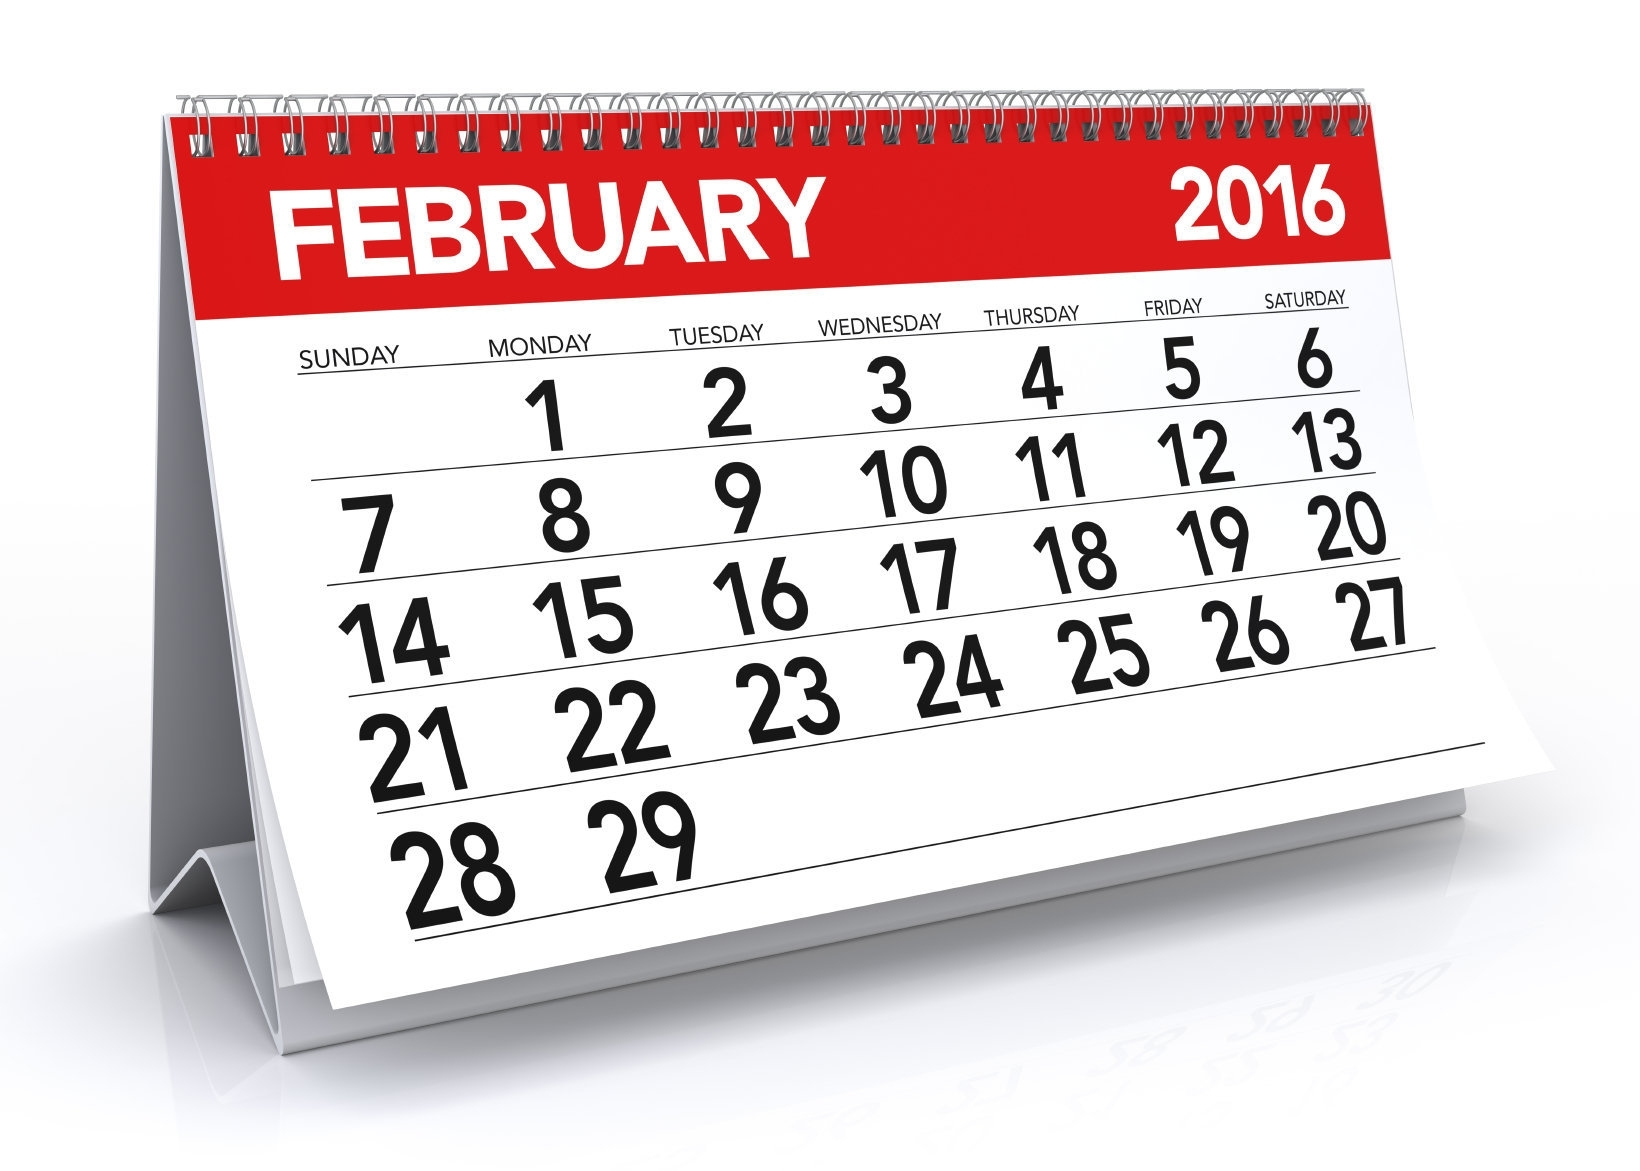 Feb. 29, 2016; Your Leap Year And Leap Day Questions Answered